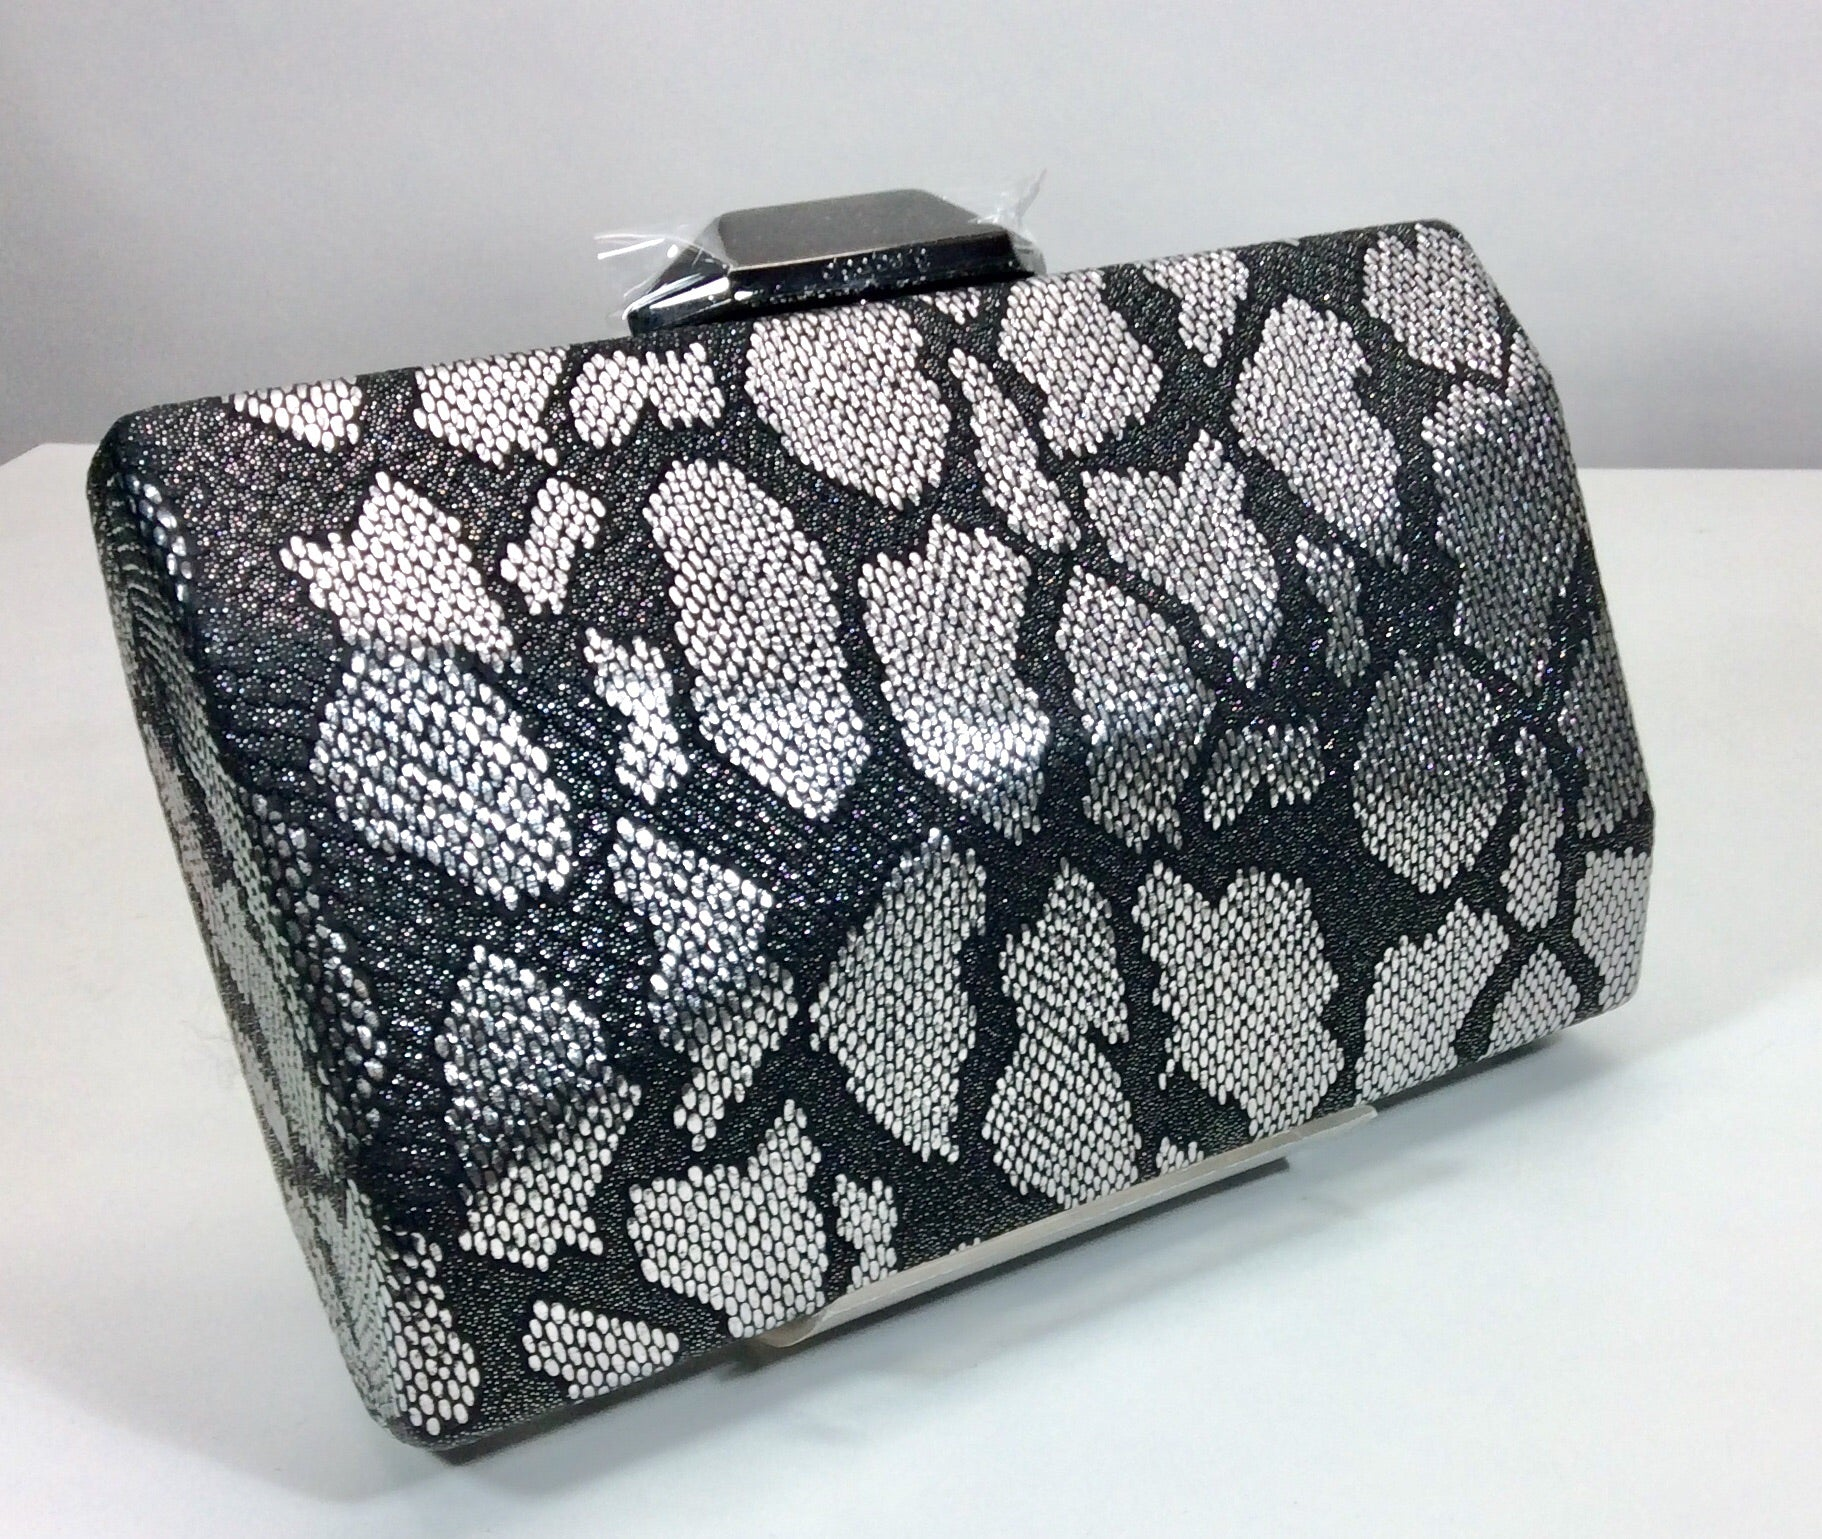 Silver and black snakeskin pattern evening bag